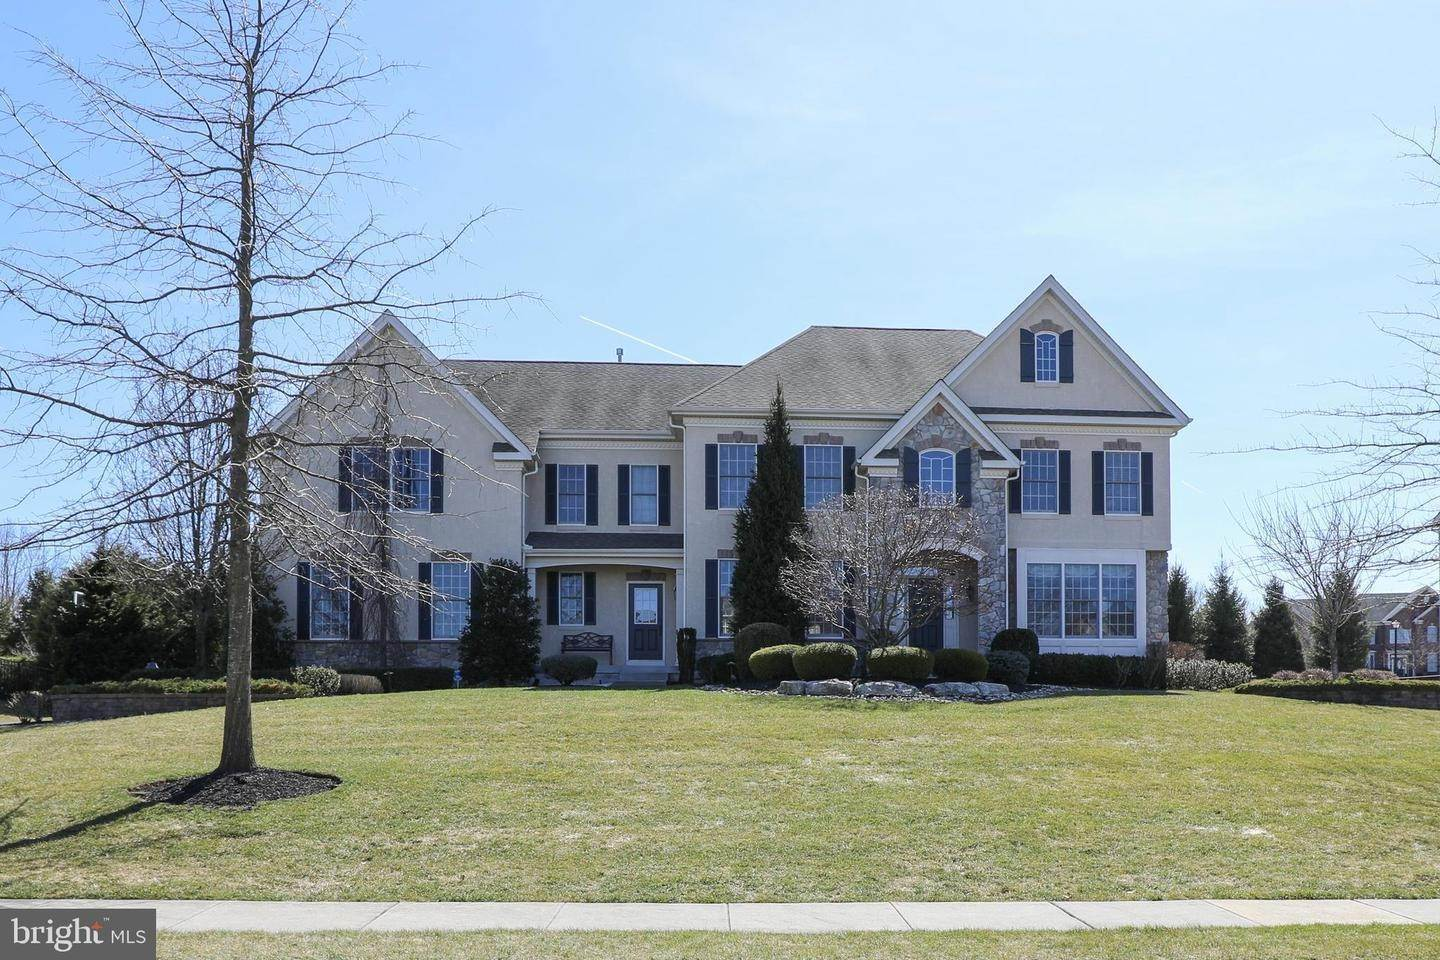 Detached House for Sale at 3 HILLVIEW Drive Newtown, Pennsylvania 18940 United States